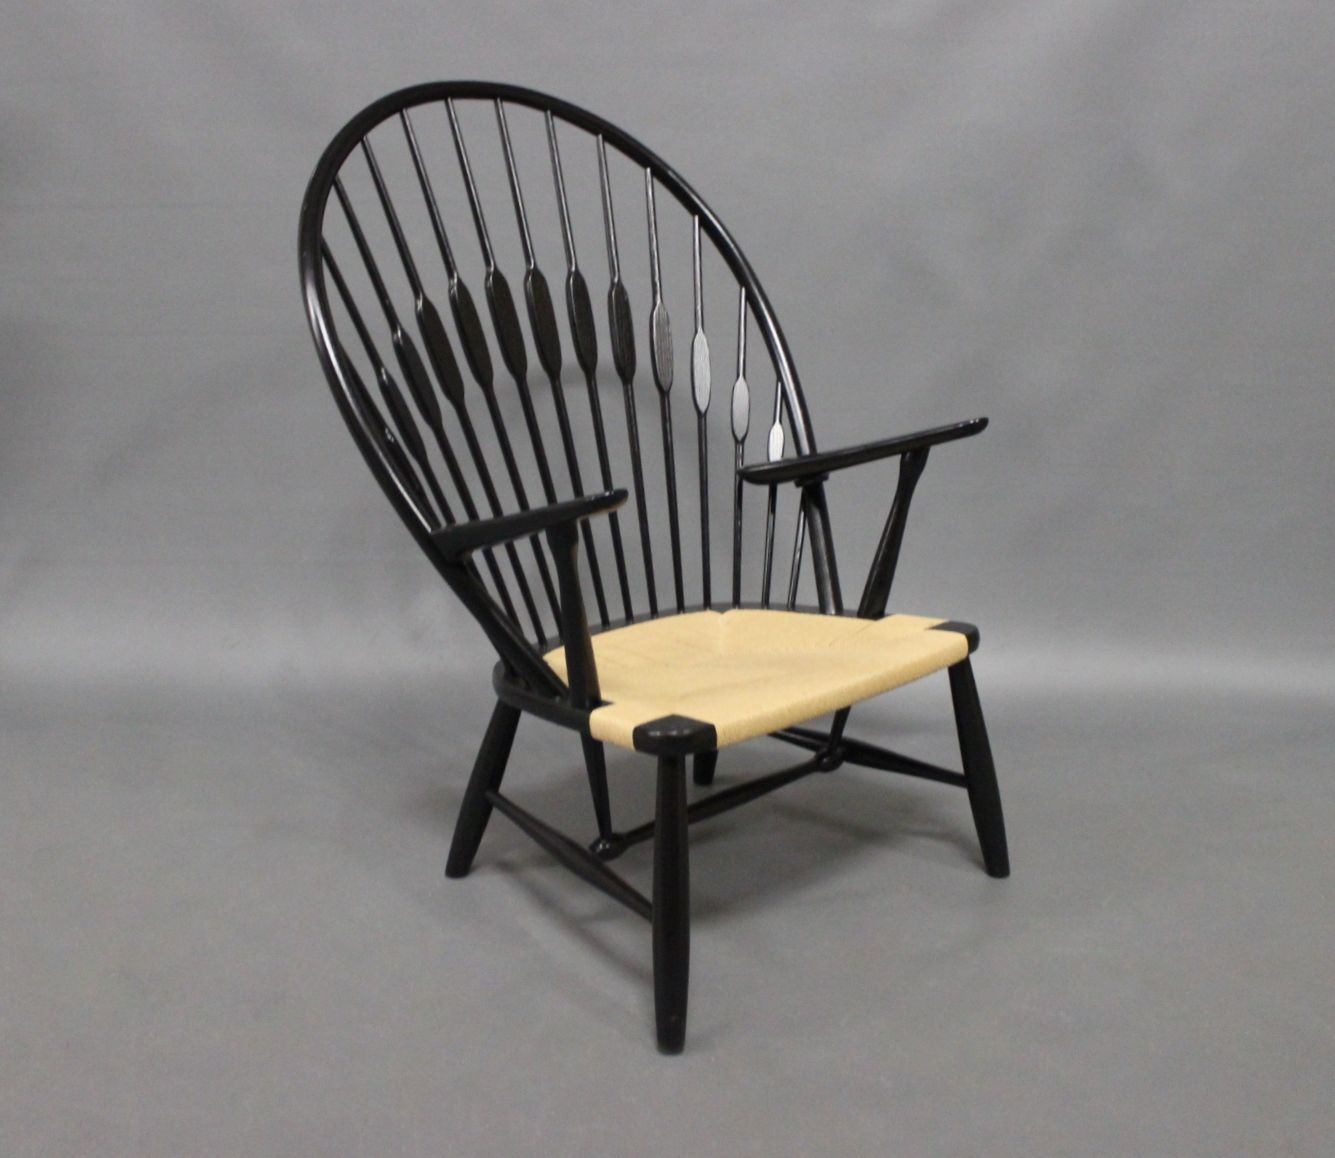 vintage peacock chair office furniture table and chairs by hans j wegner 1980s for sale at